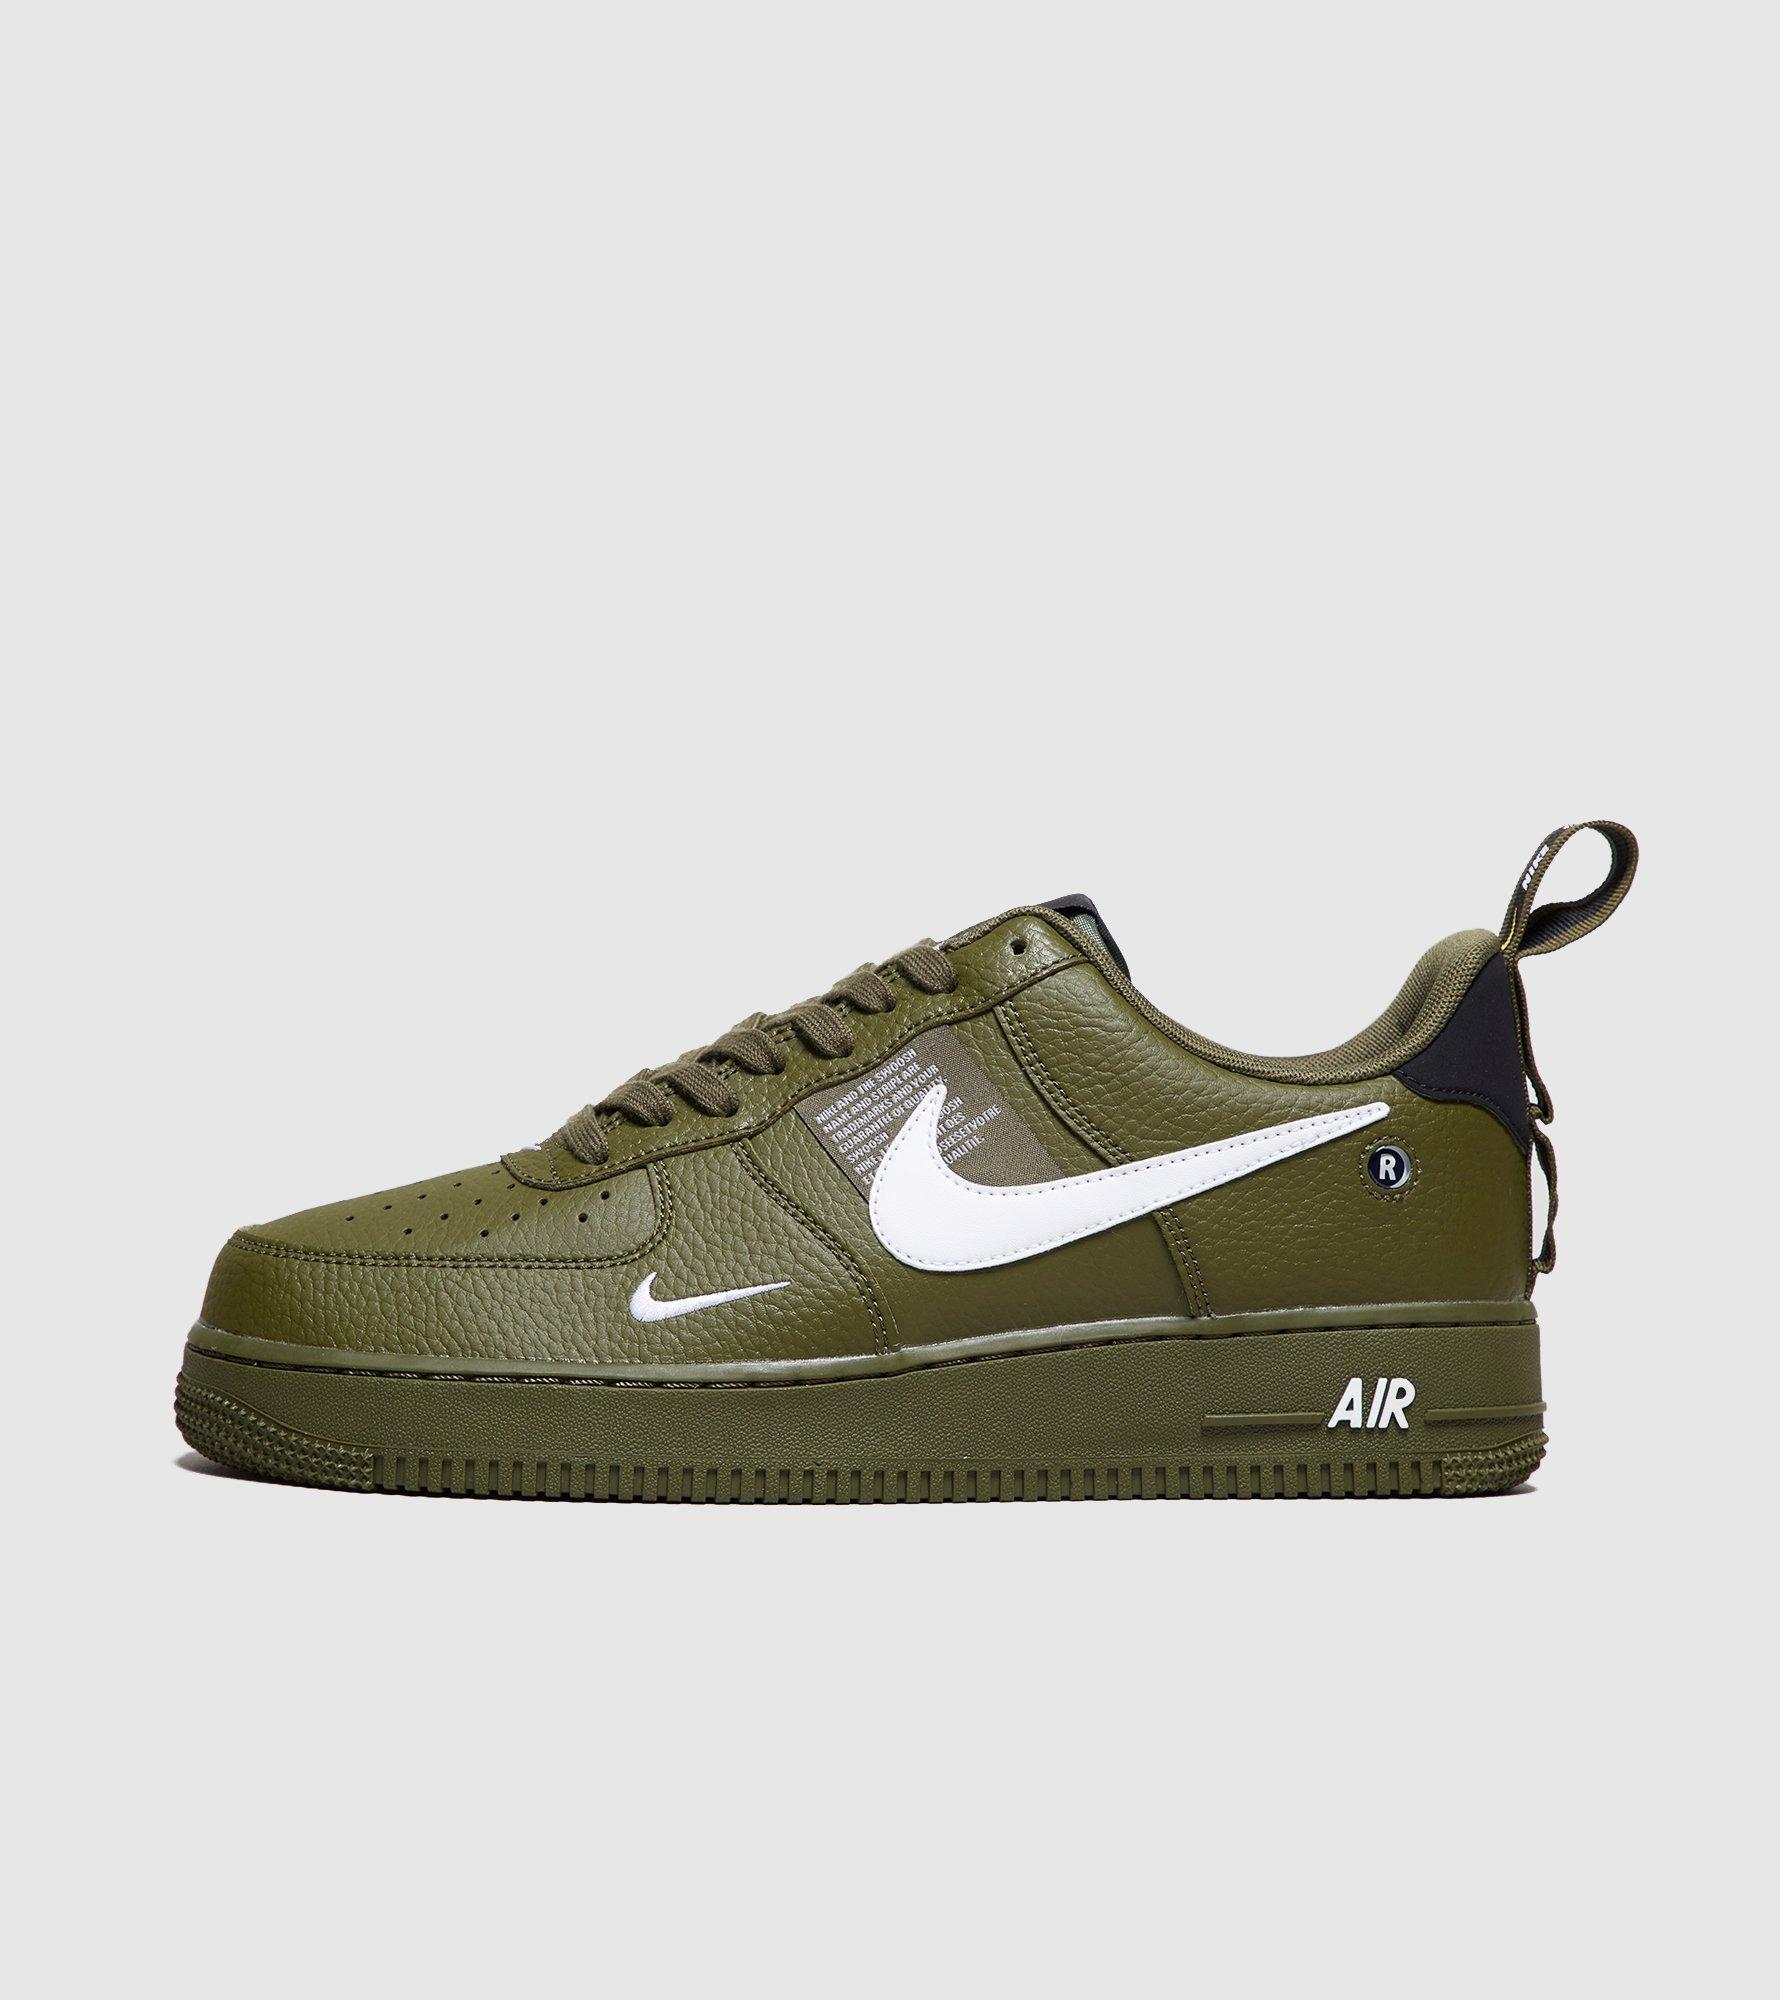 Nike Leather Air Force 1 Utility Trainers in GreenWhite